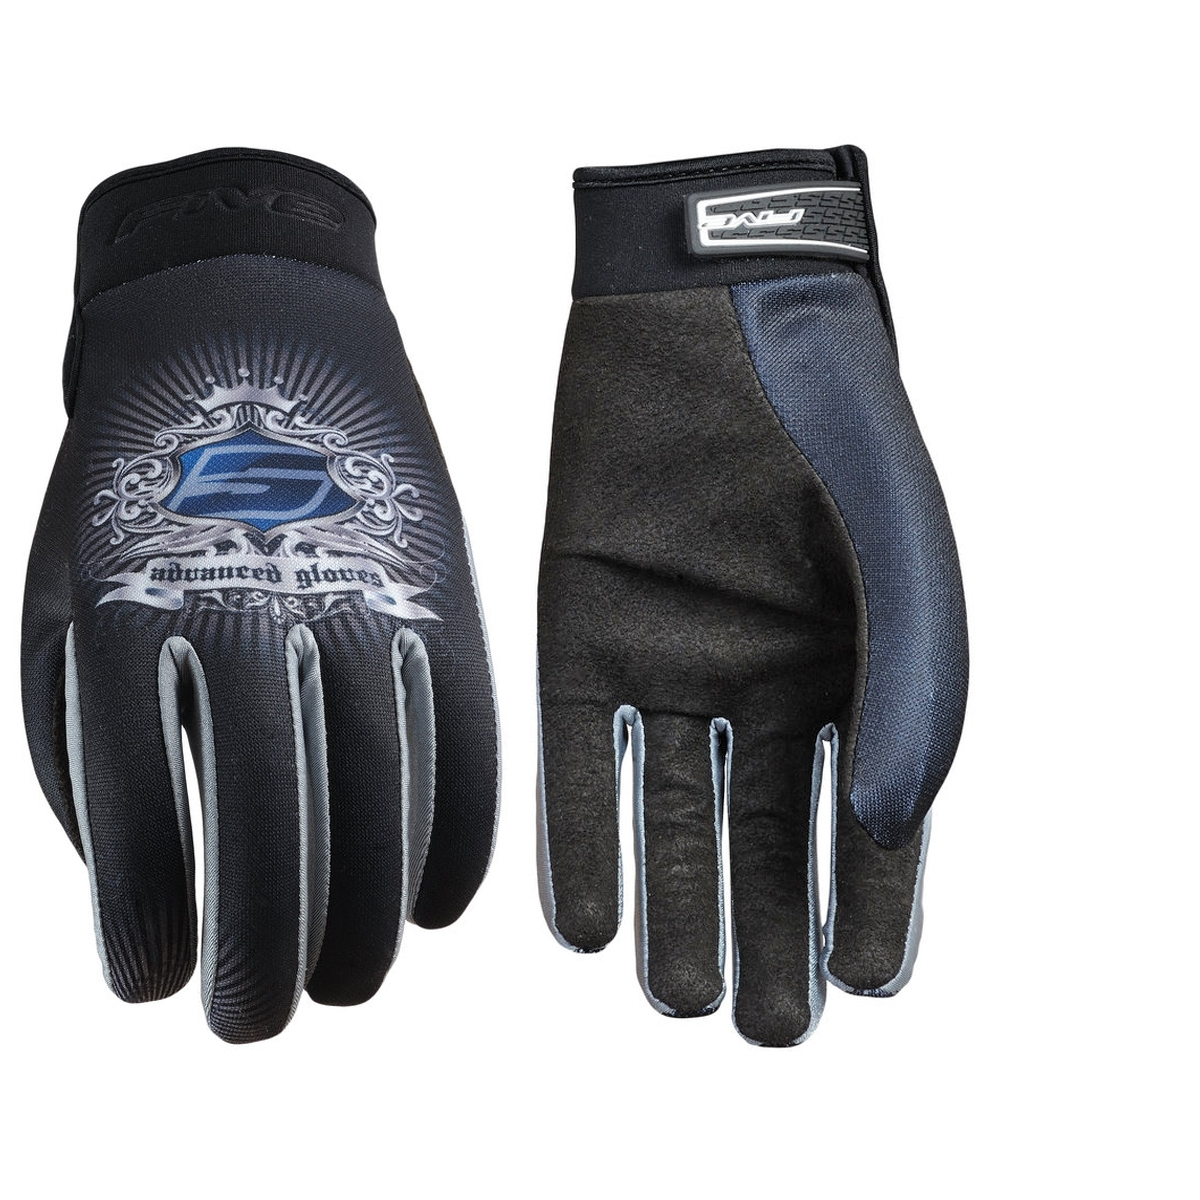 Gants Five Planet Fashion Blaze - XS